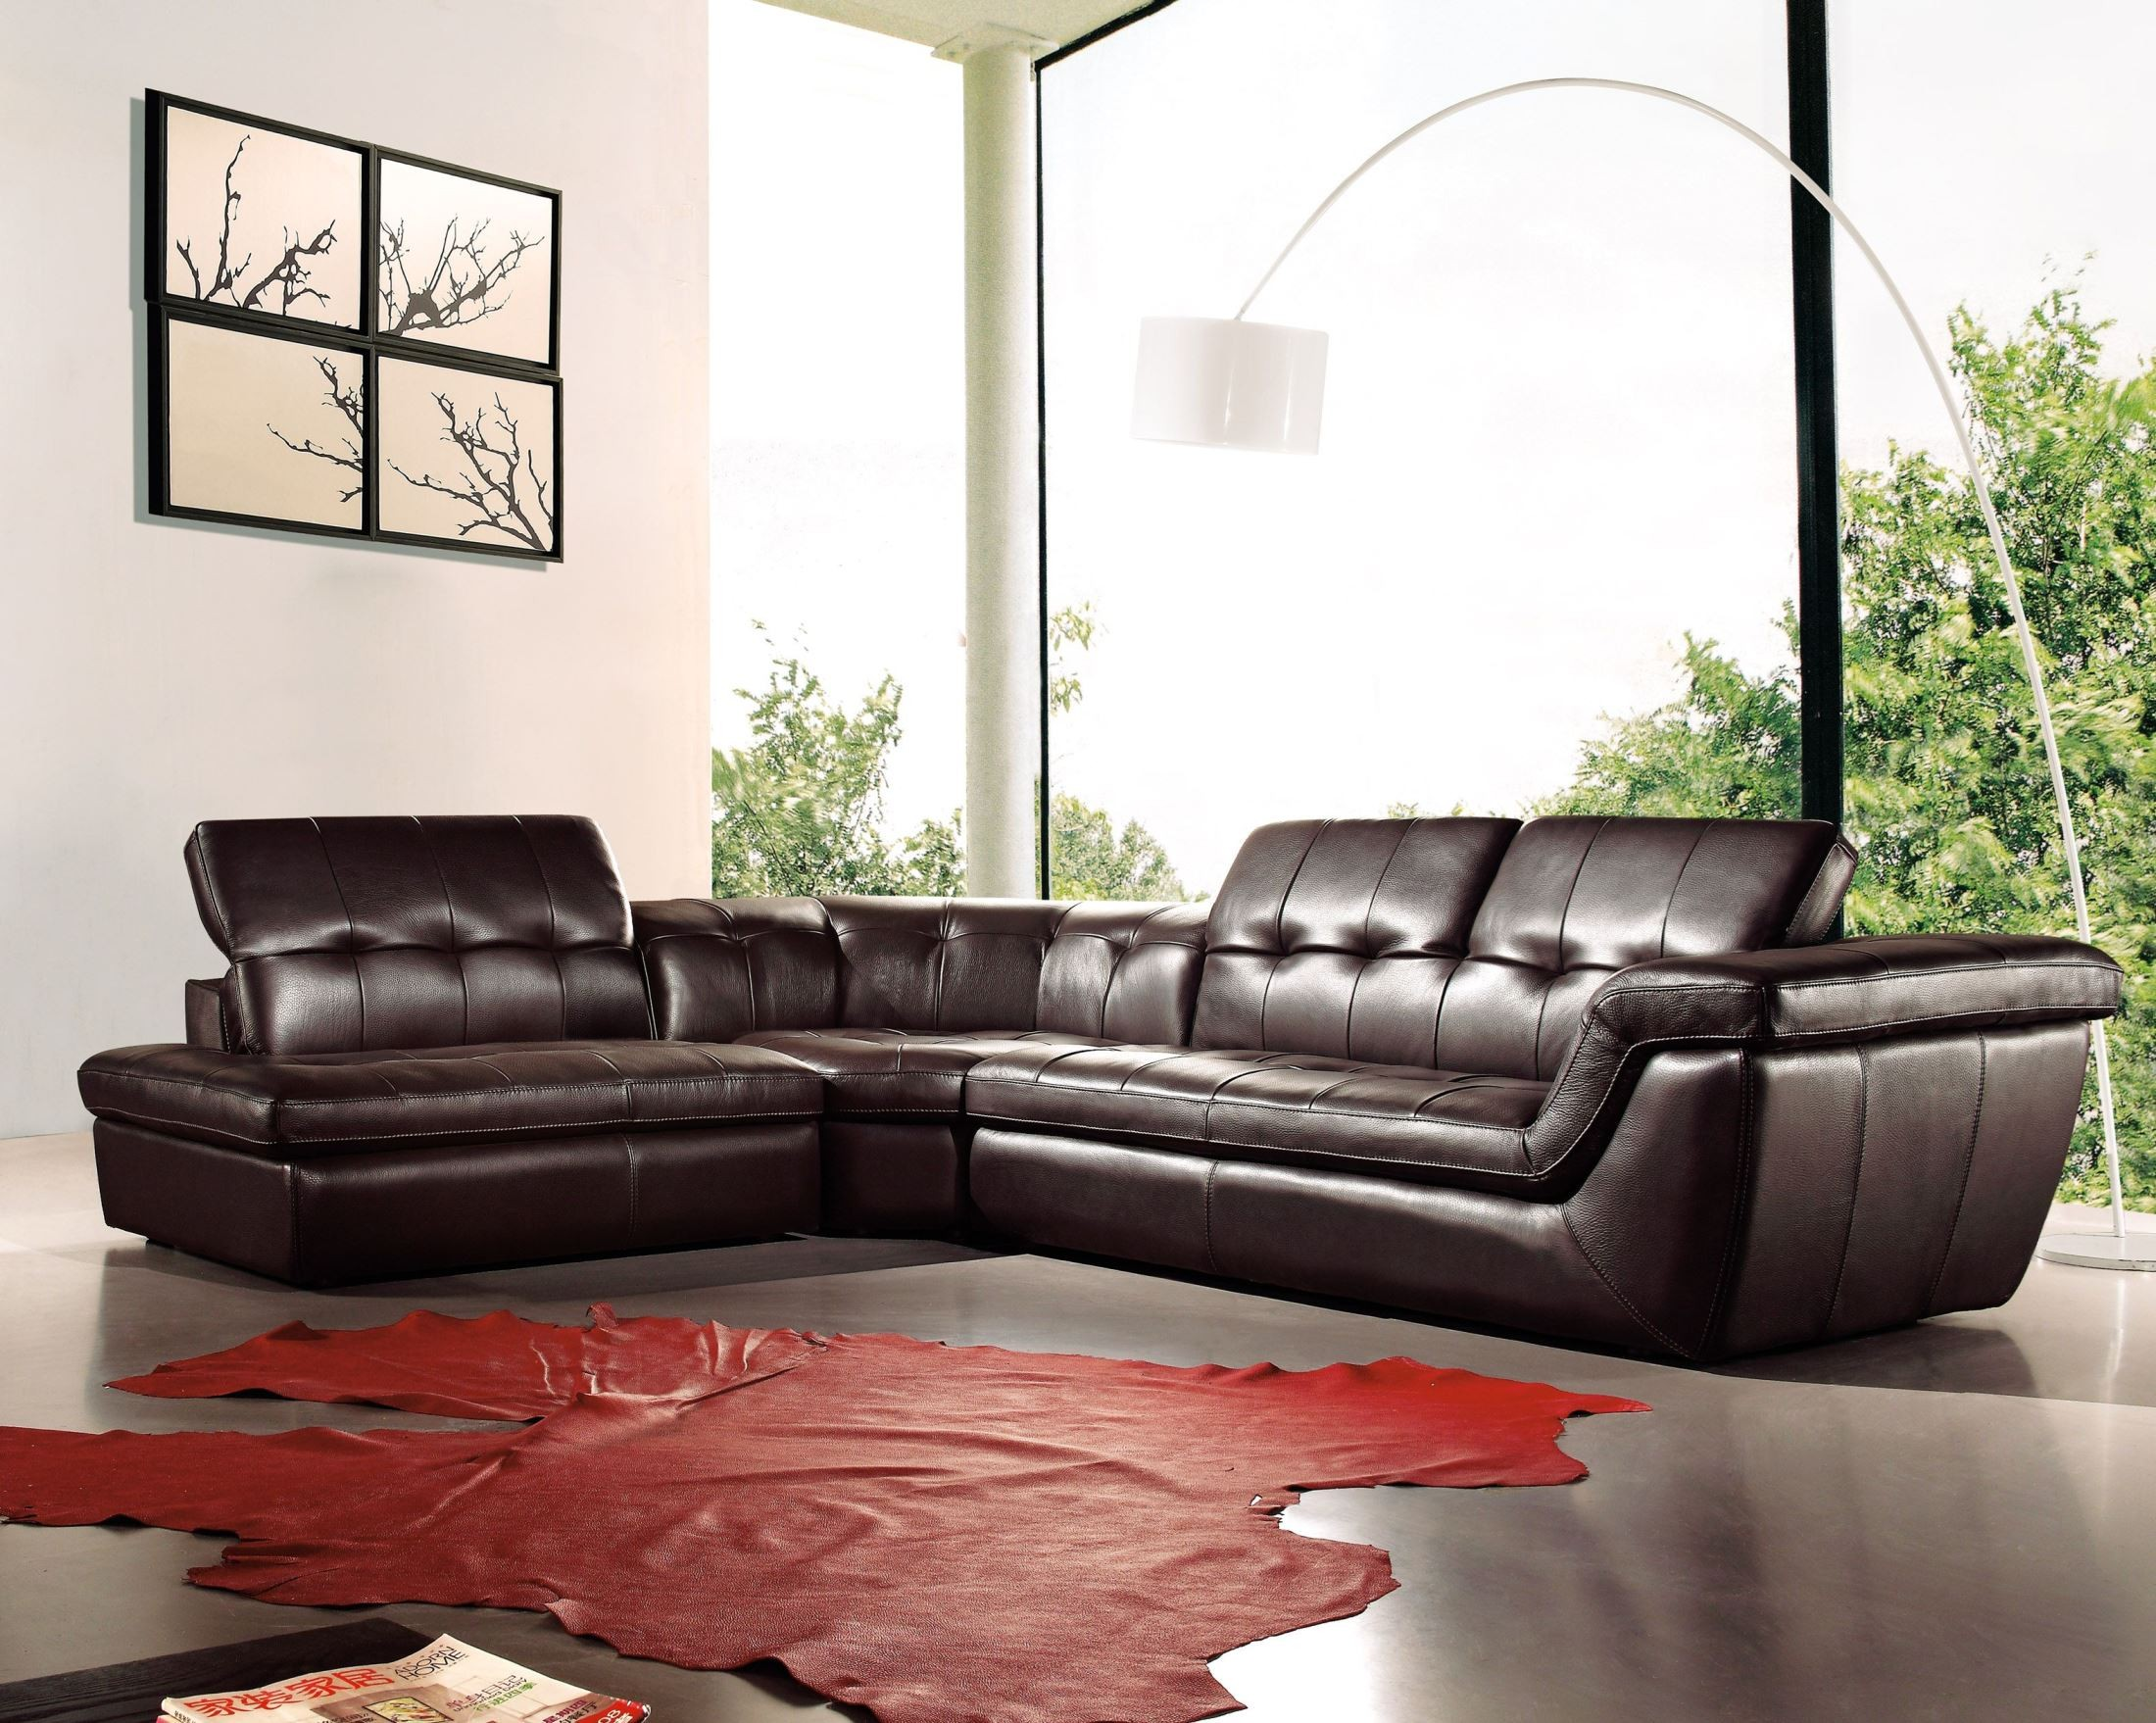 397 chocolate italian leather laf sectional from j m for Affordable furniture 3 piece sectional in jesse cocoa